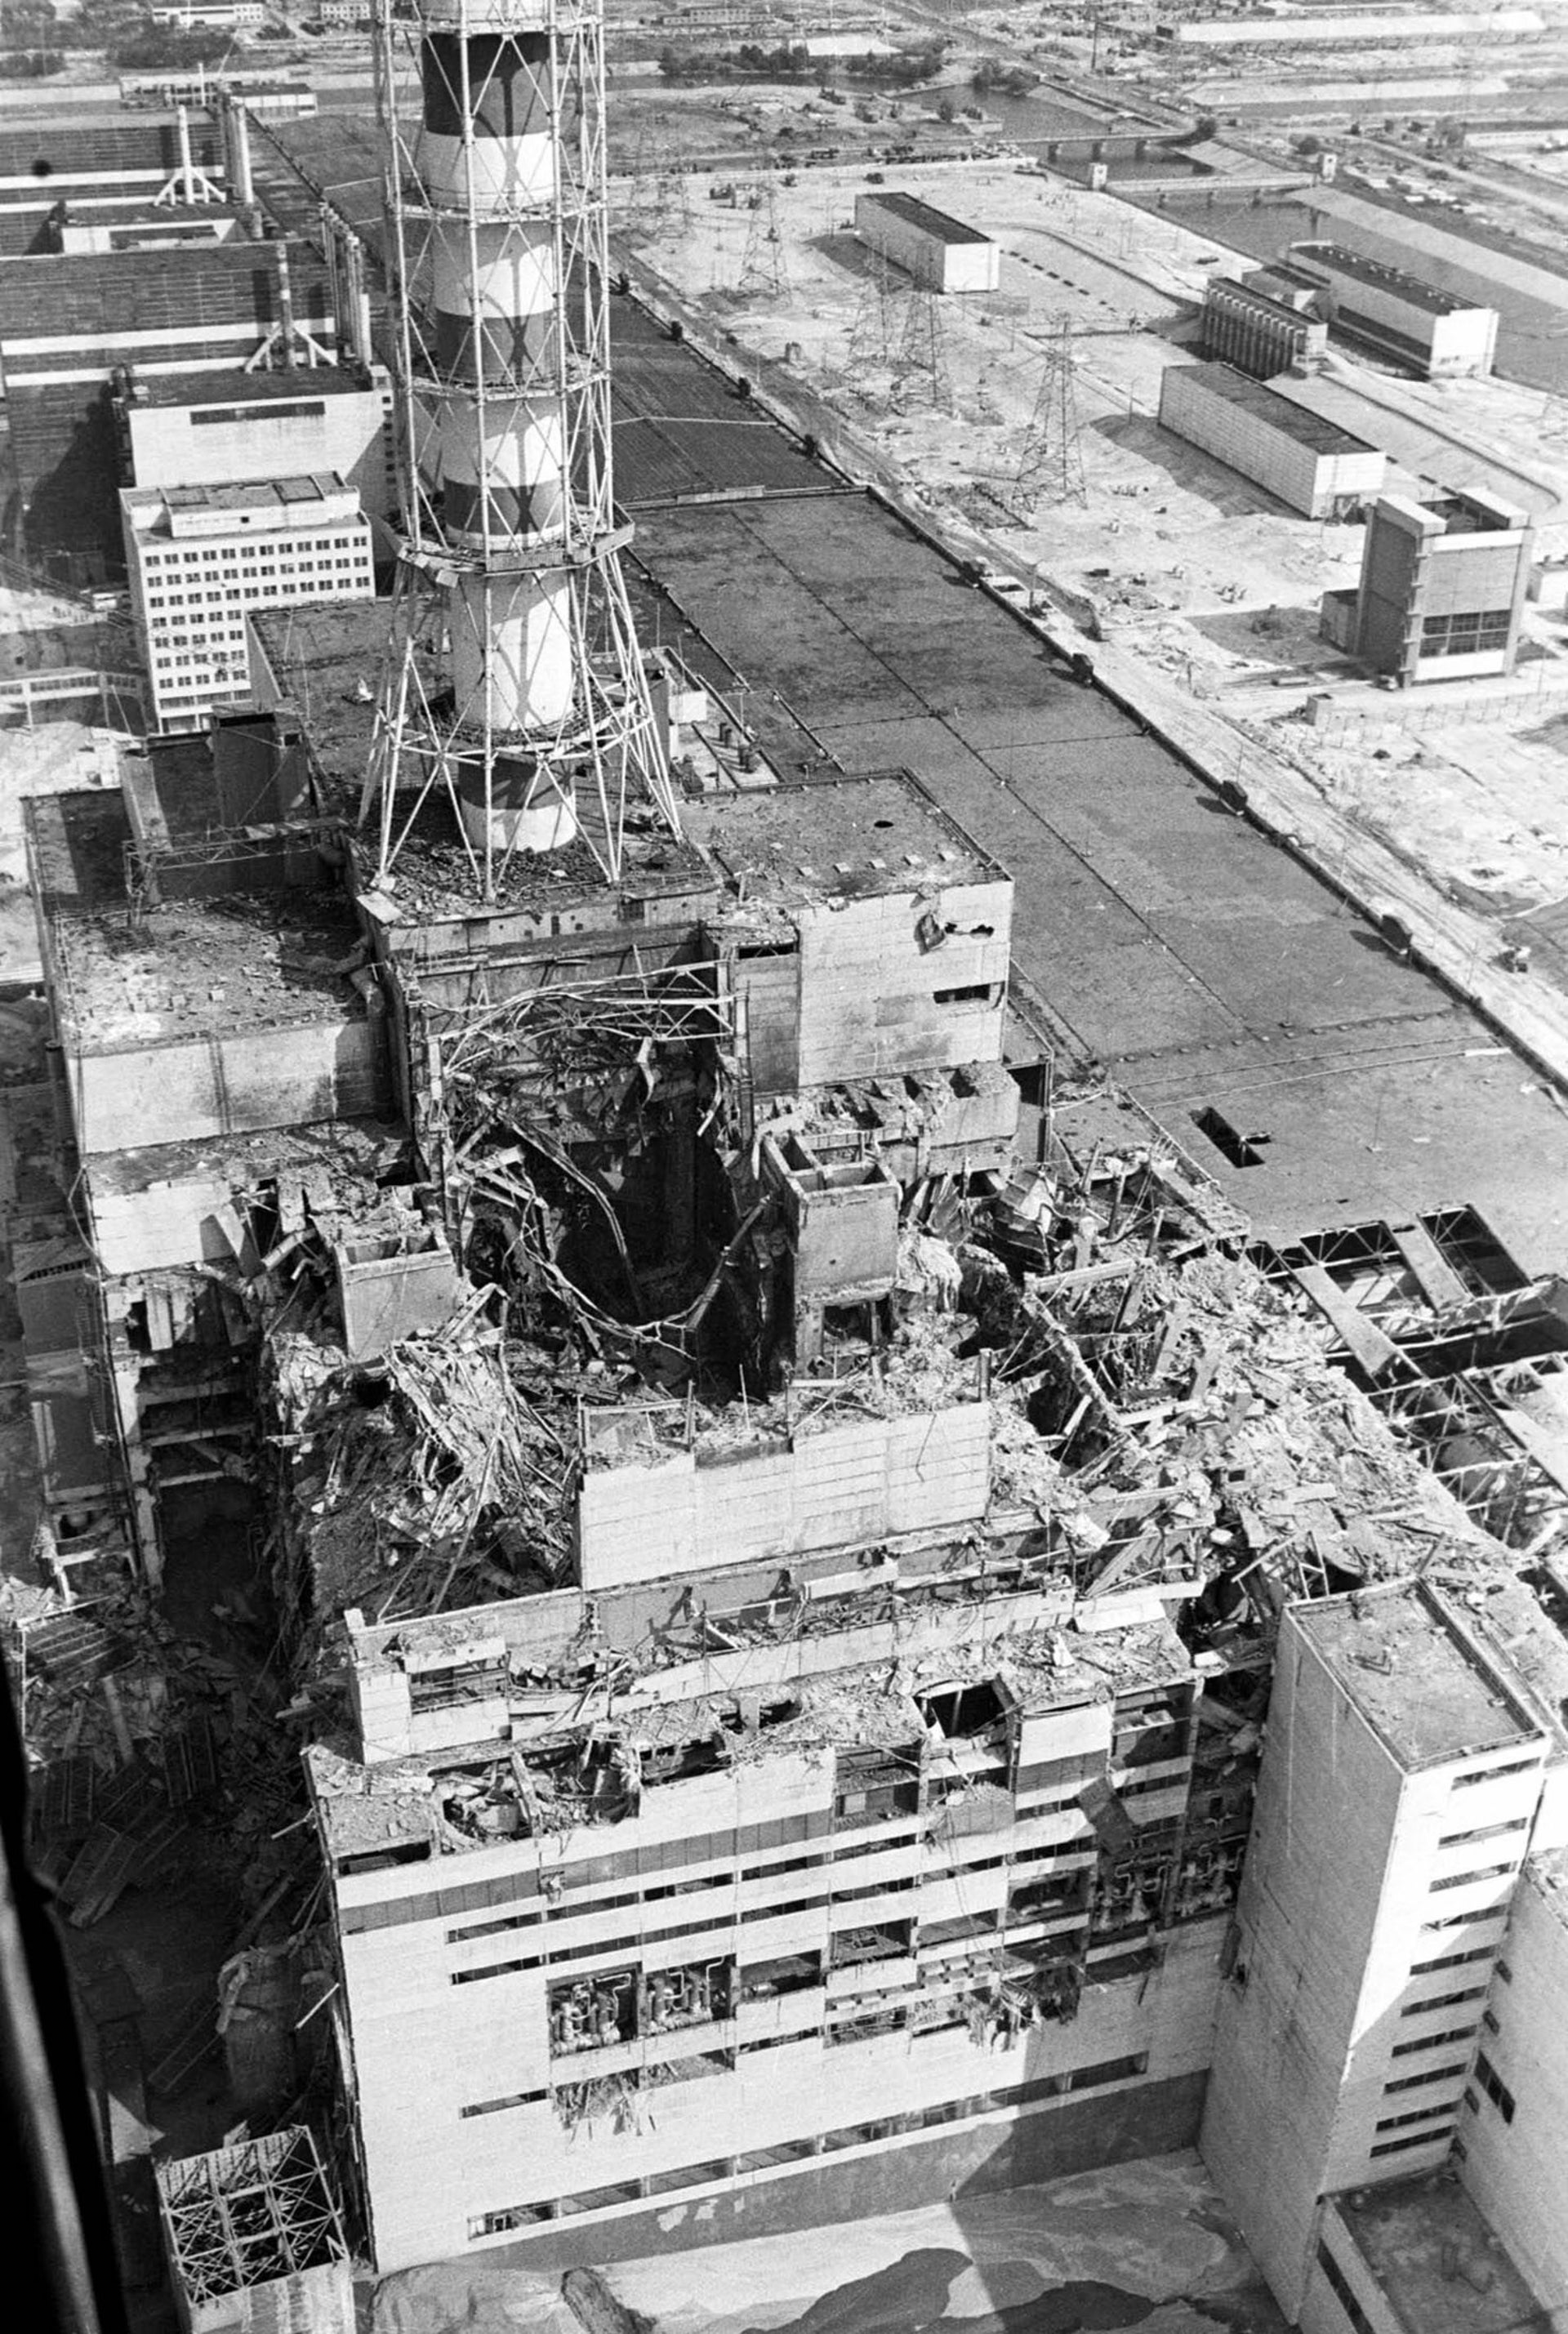 The pit in the middle of the Chernobyl nuclear reactor, after the explosion.